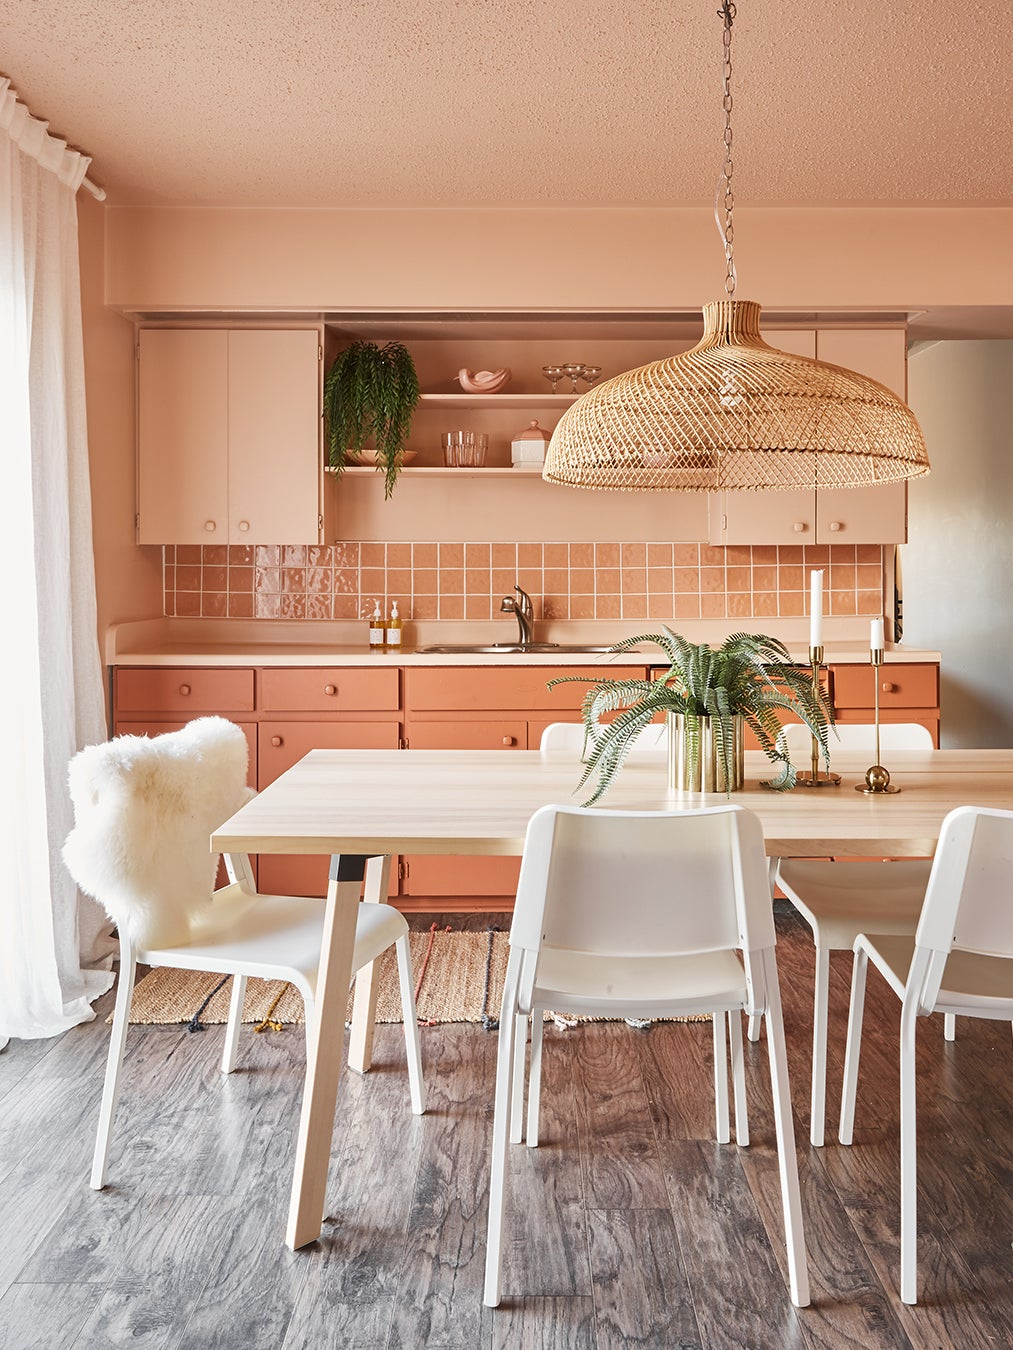 Dine-in kitchen with wood dining table